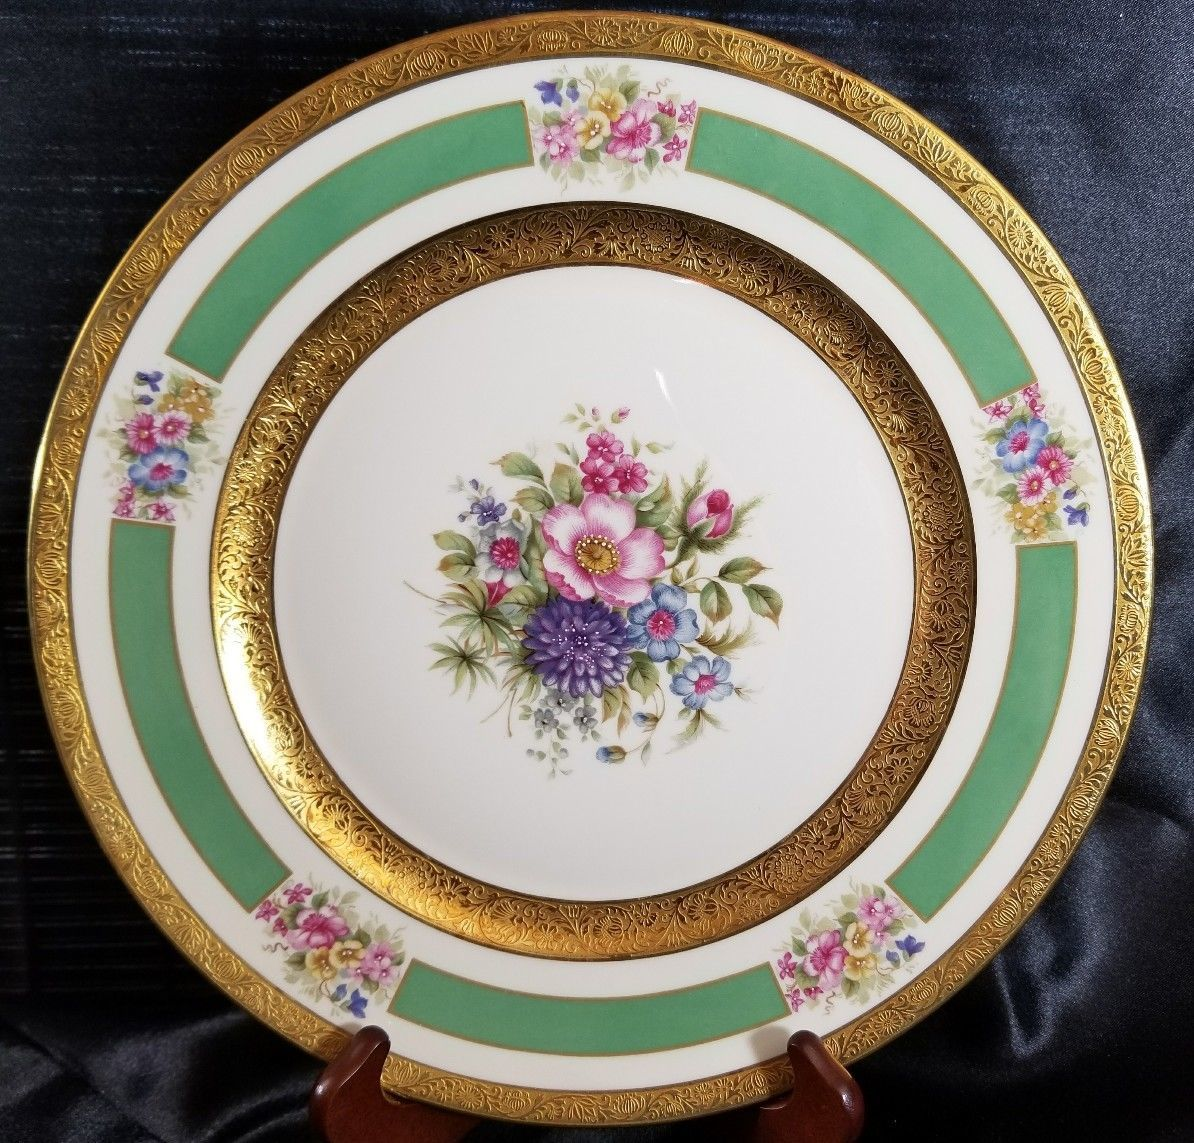 "Primary image for ROSENTHAL 5841 11"" Service PLATE GOLD ENCRUSTED  FLORAL (multiple available)"